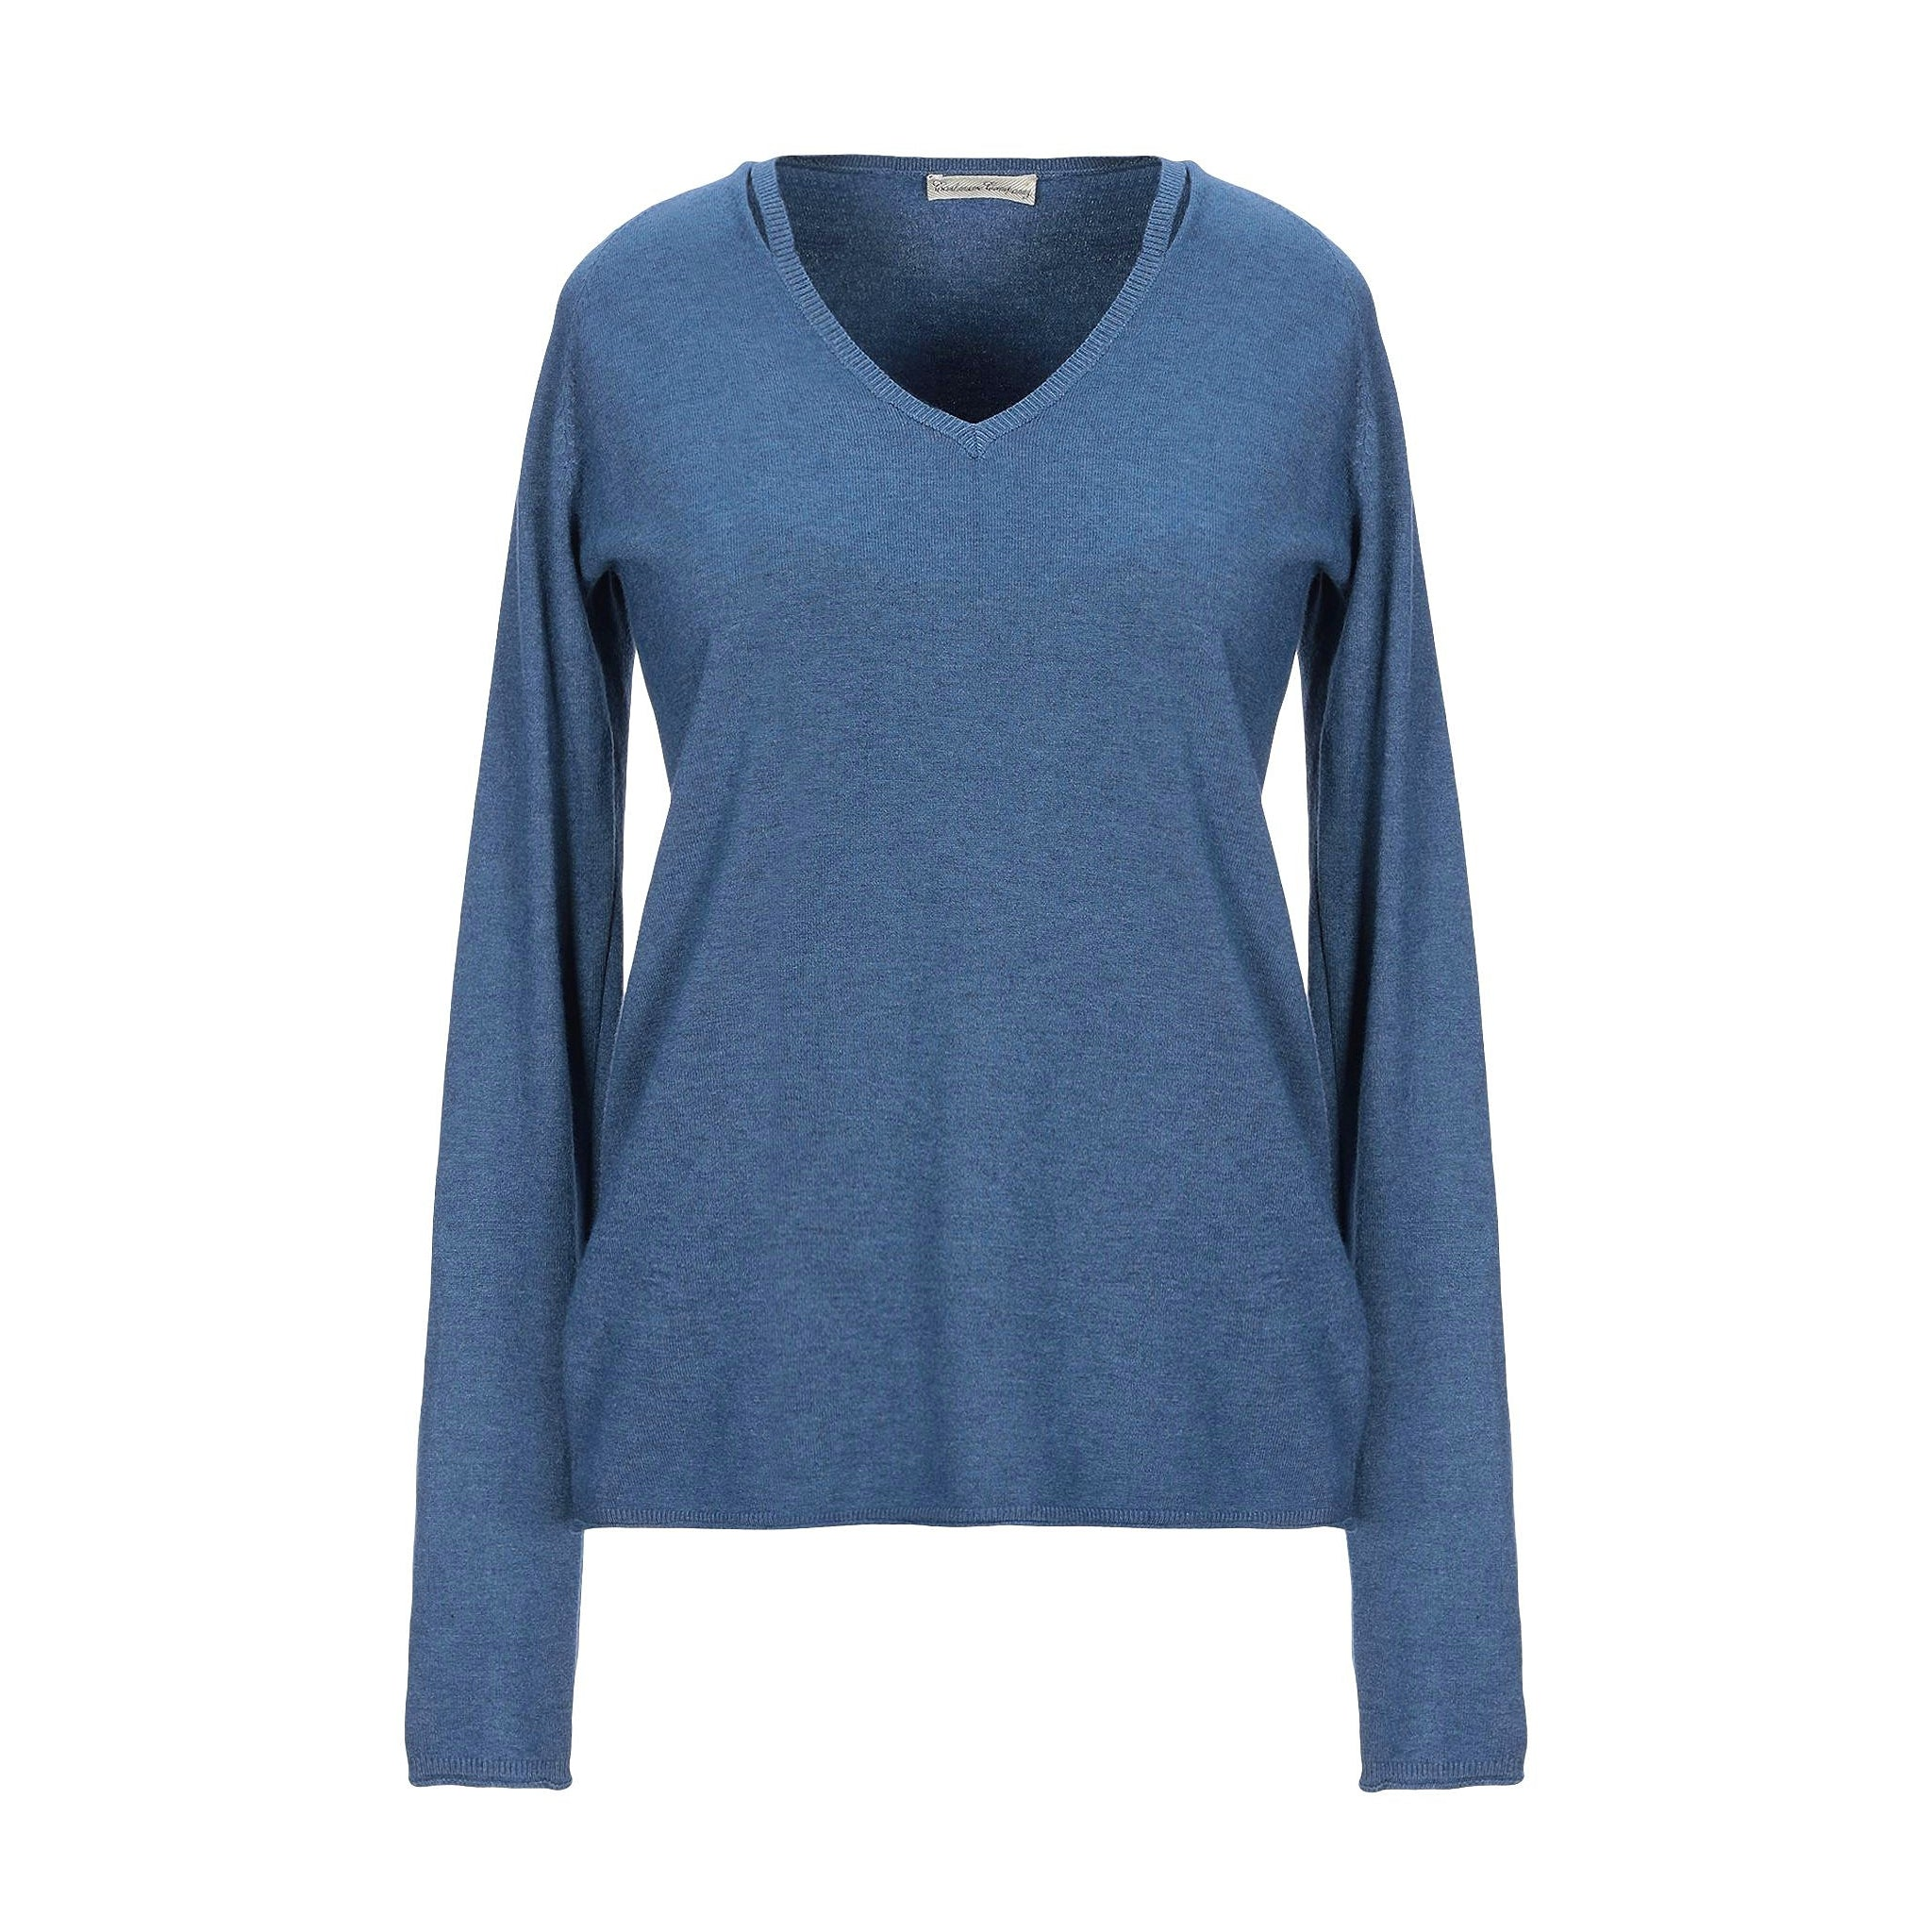 Cashmere Company Wool And Cashmere Sweater